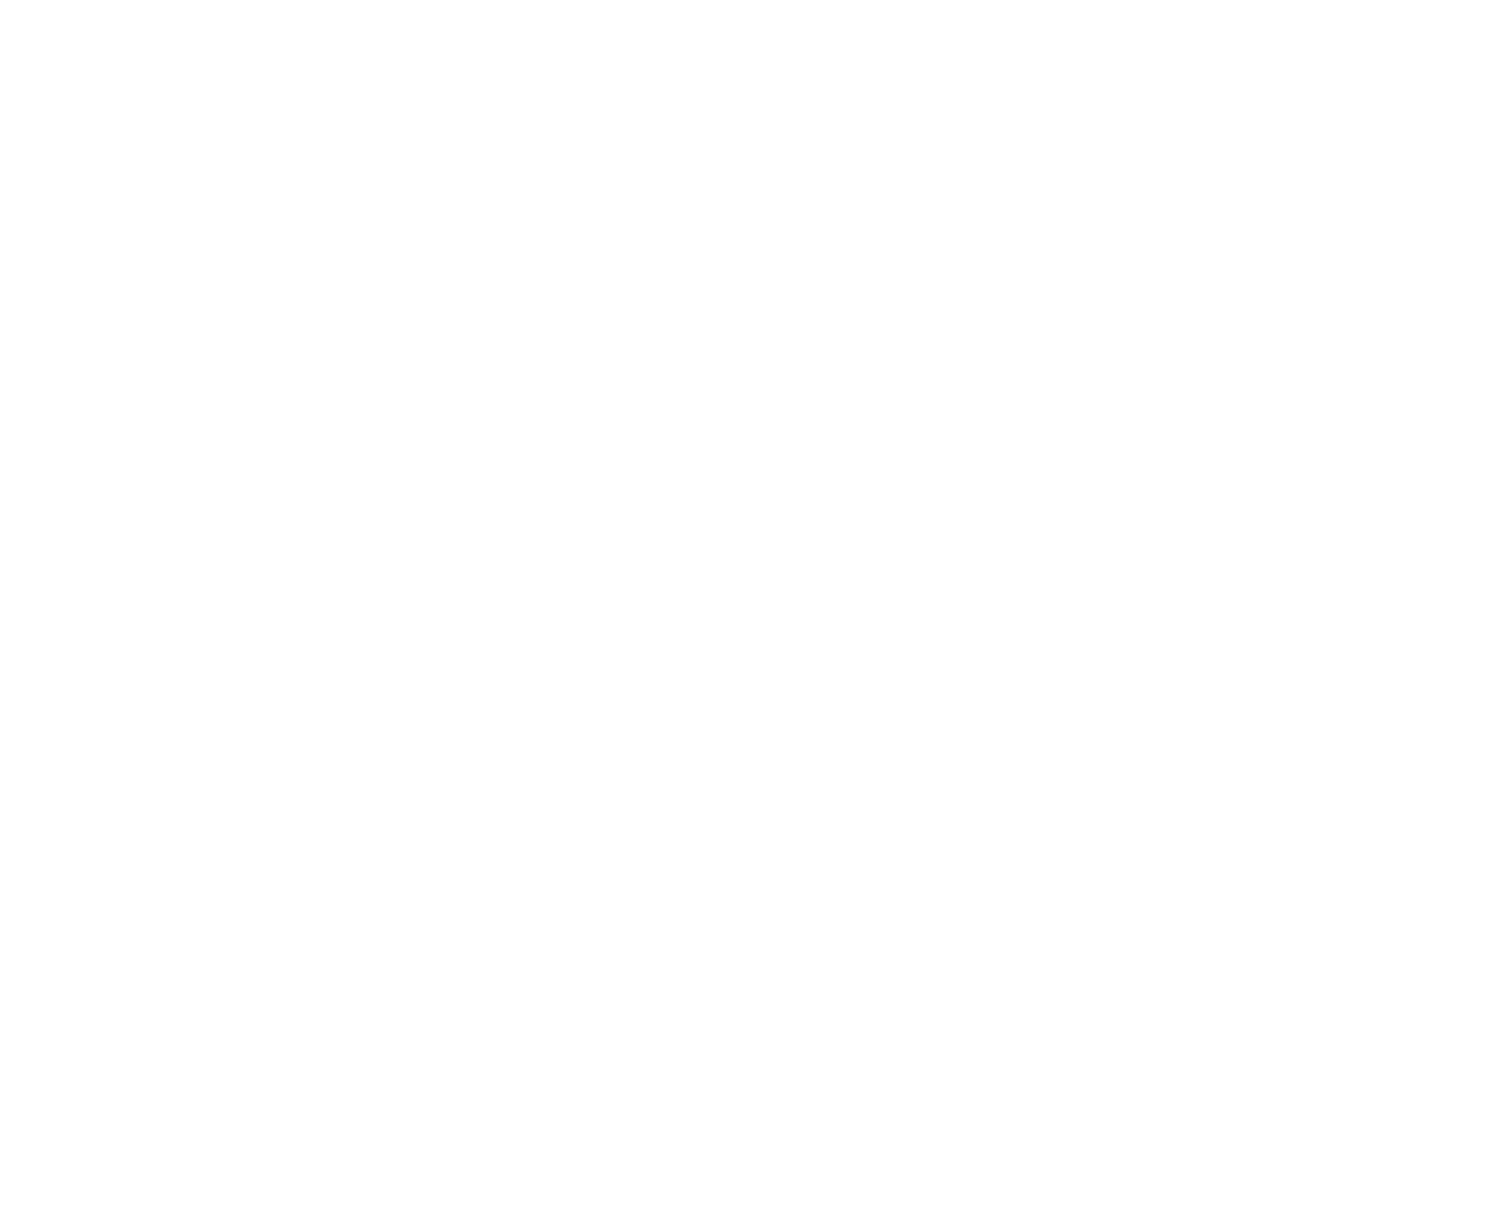 Immigrant Heritage Hall of Fame